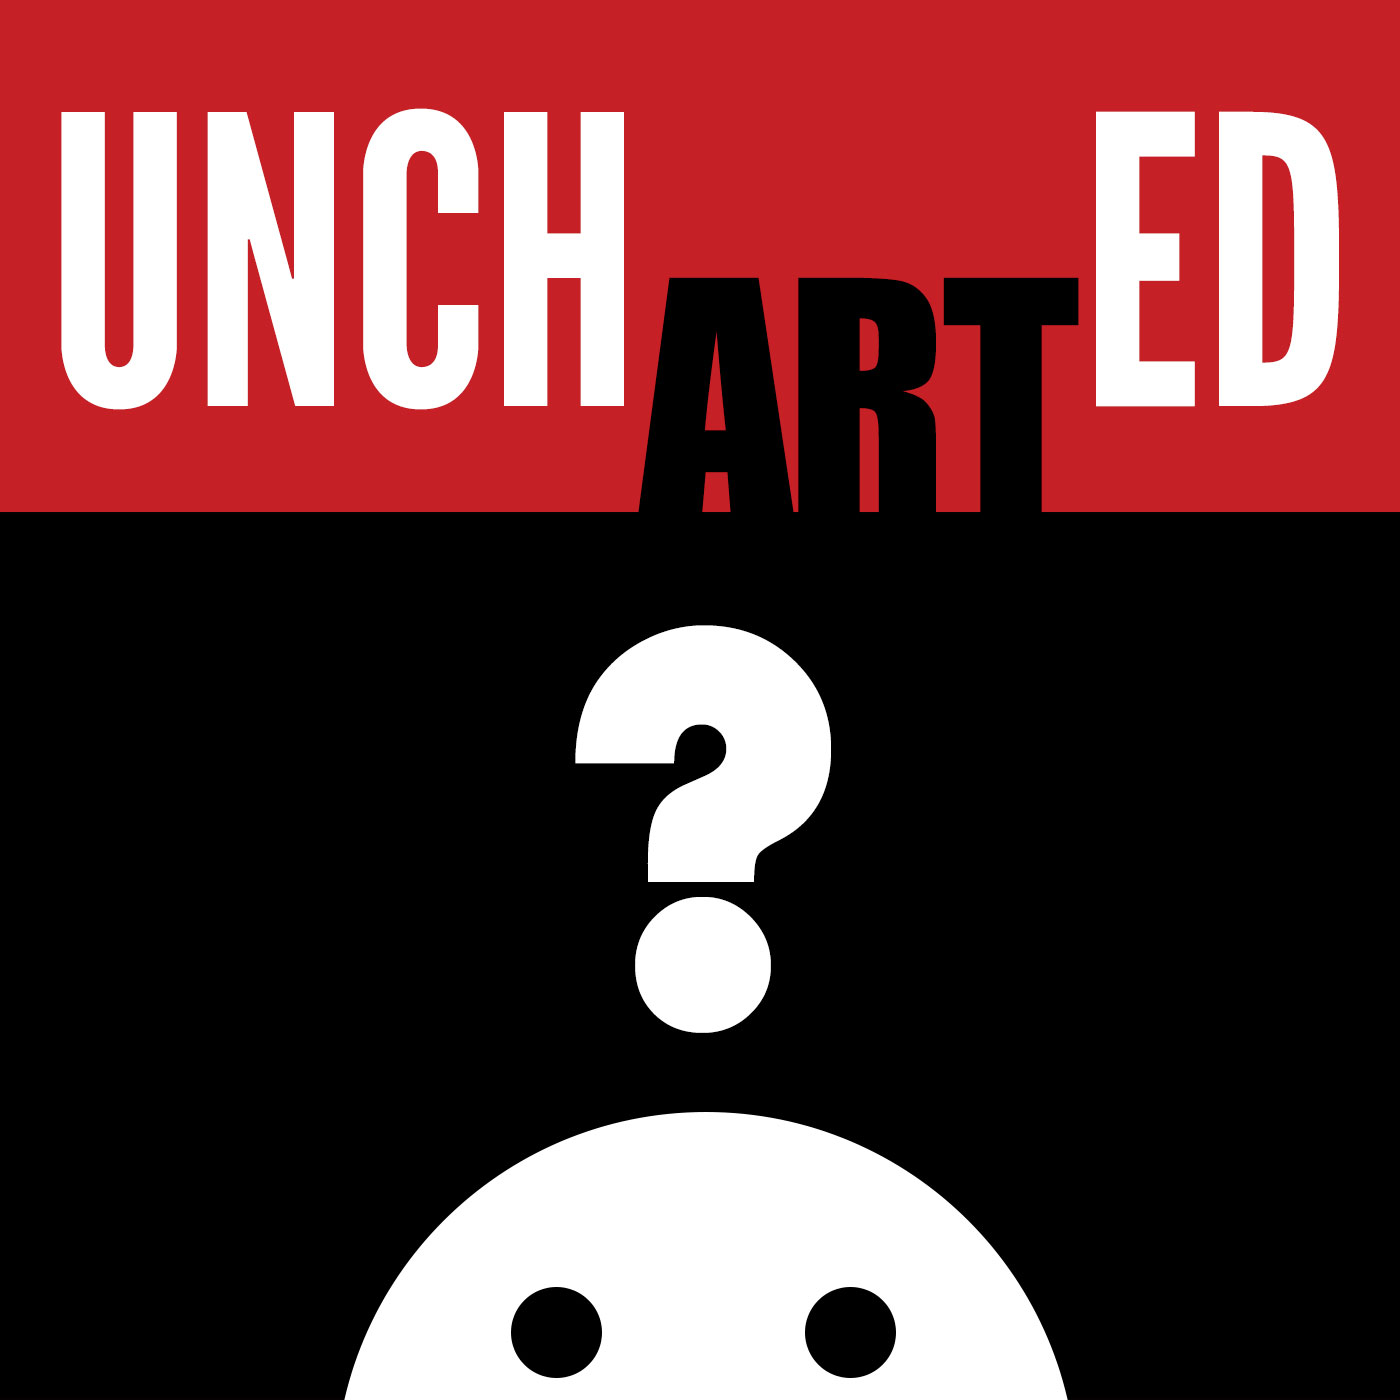 Uncharted Arts | The Podcast